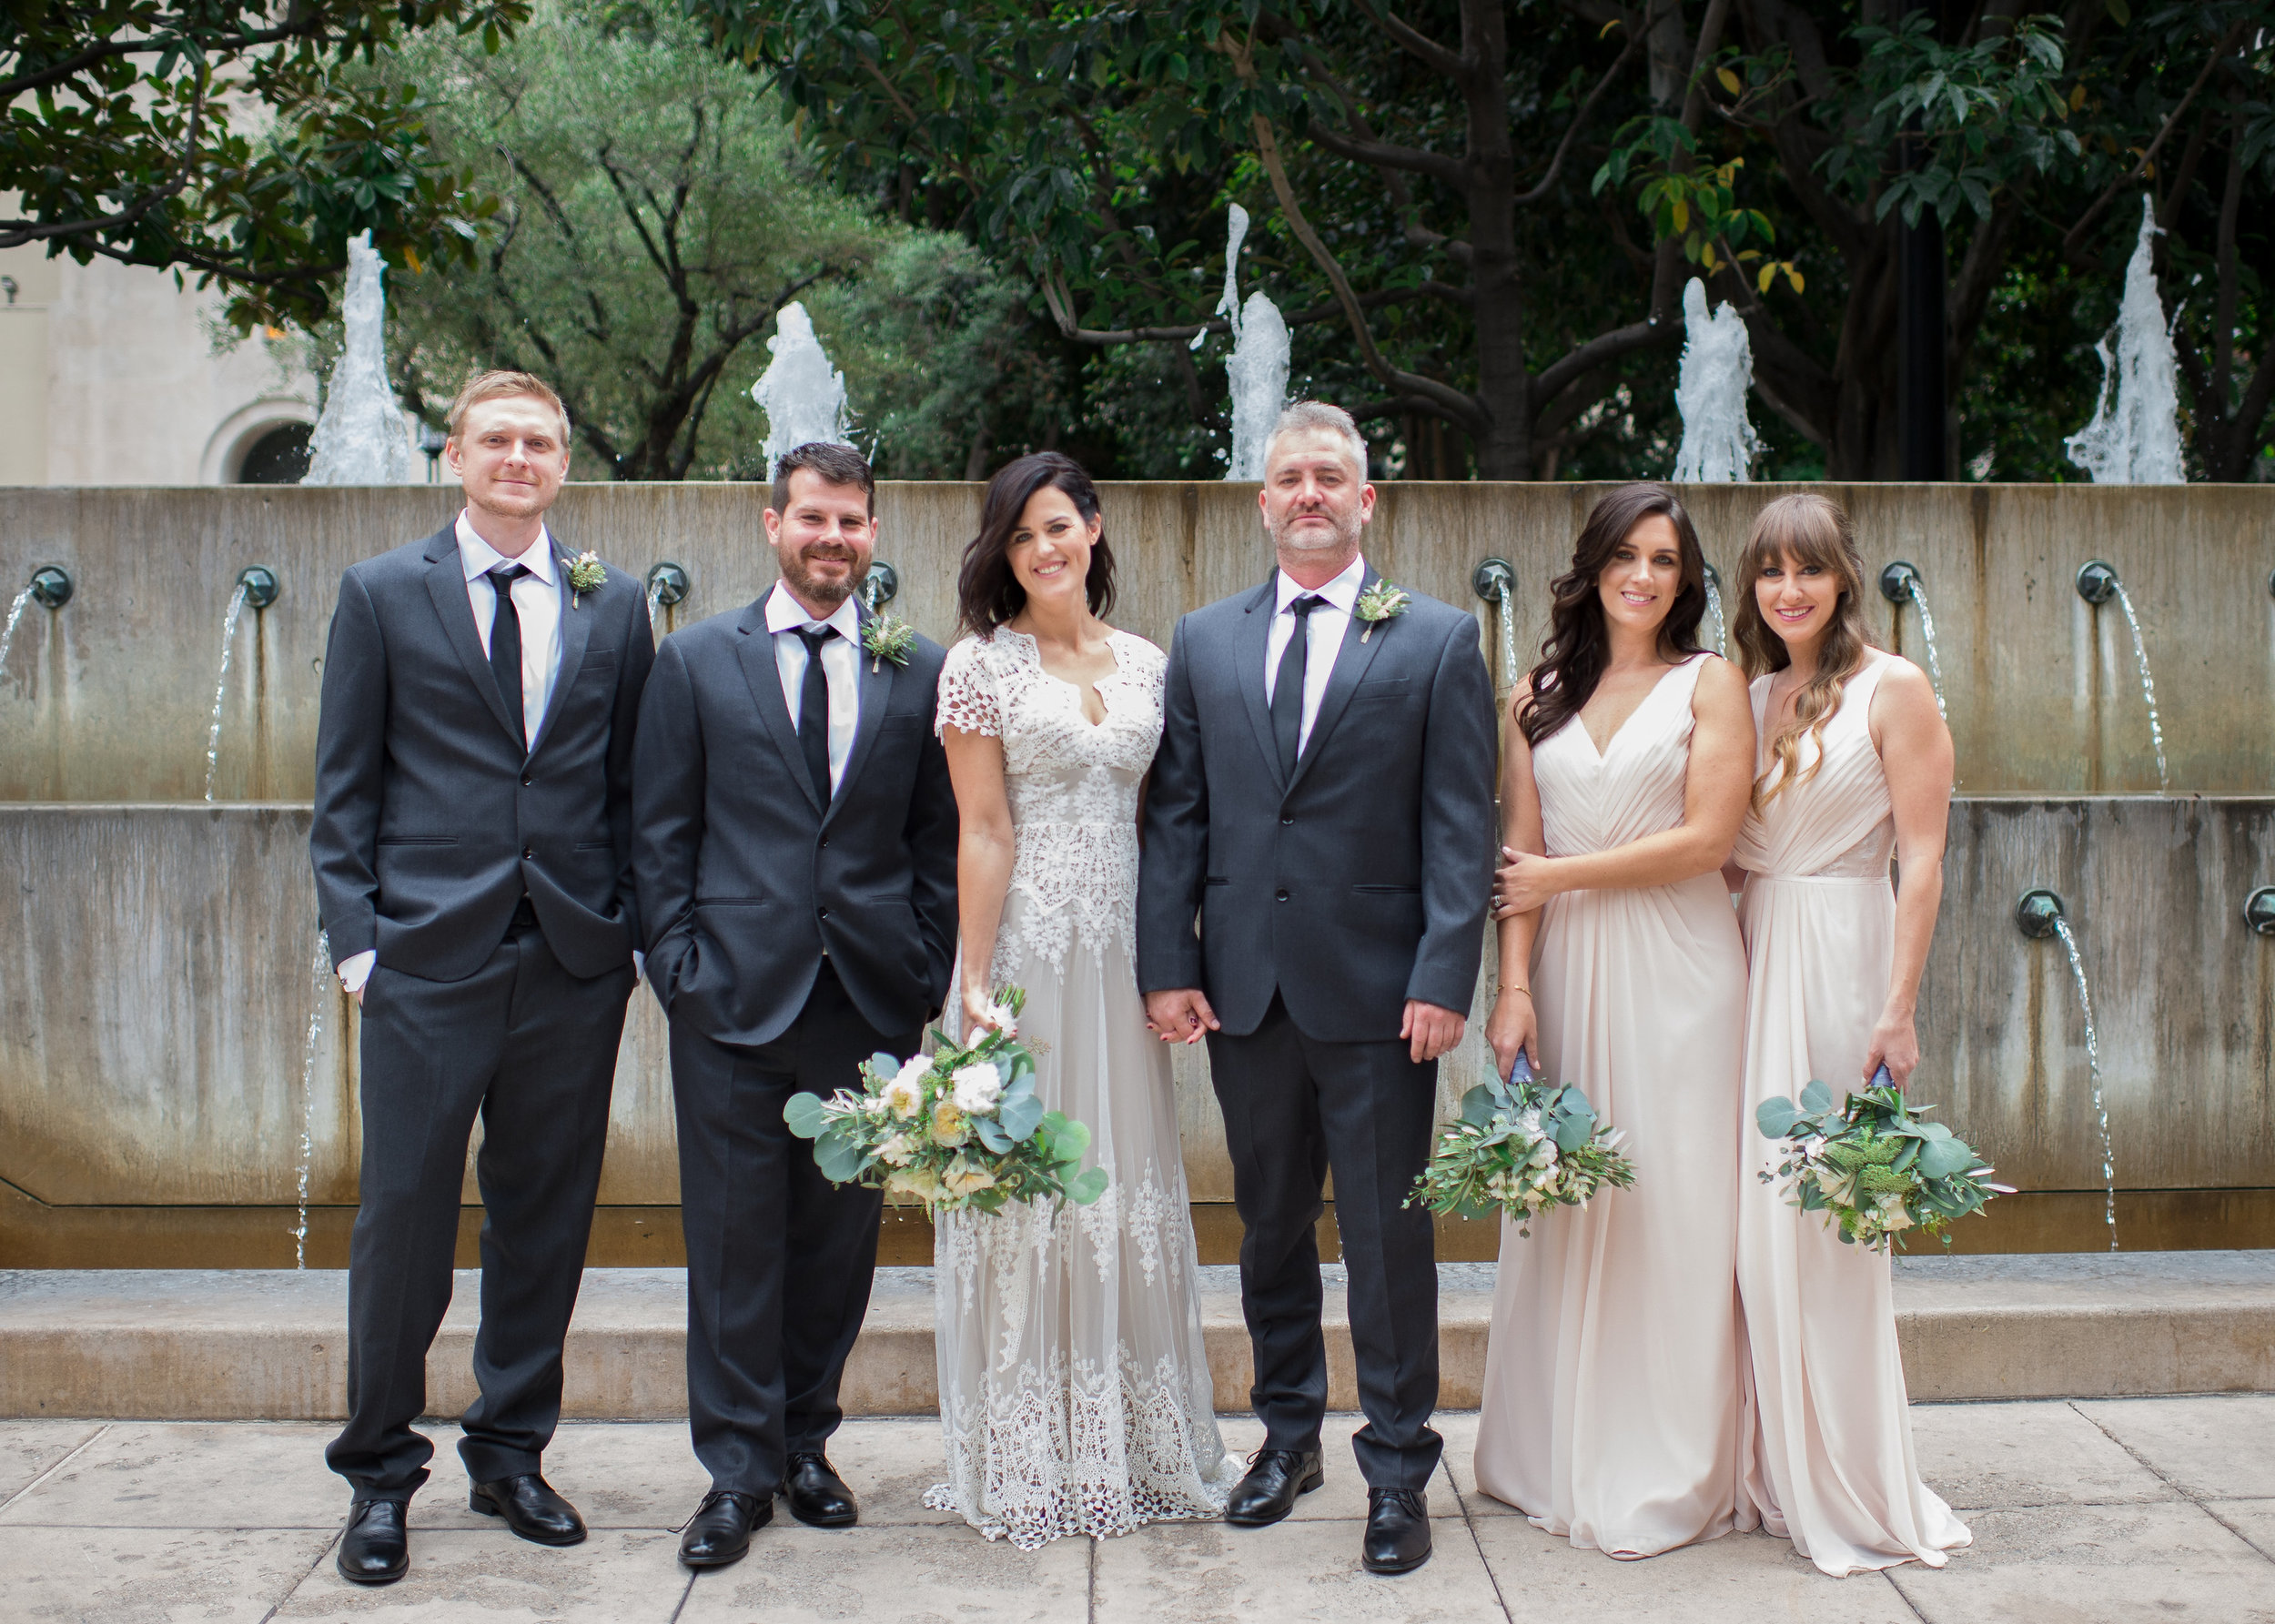 socal-wedding-consultant-best-wedding-planners-in-southern-california-cafe-pinot-wedding-planner103.jpg